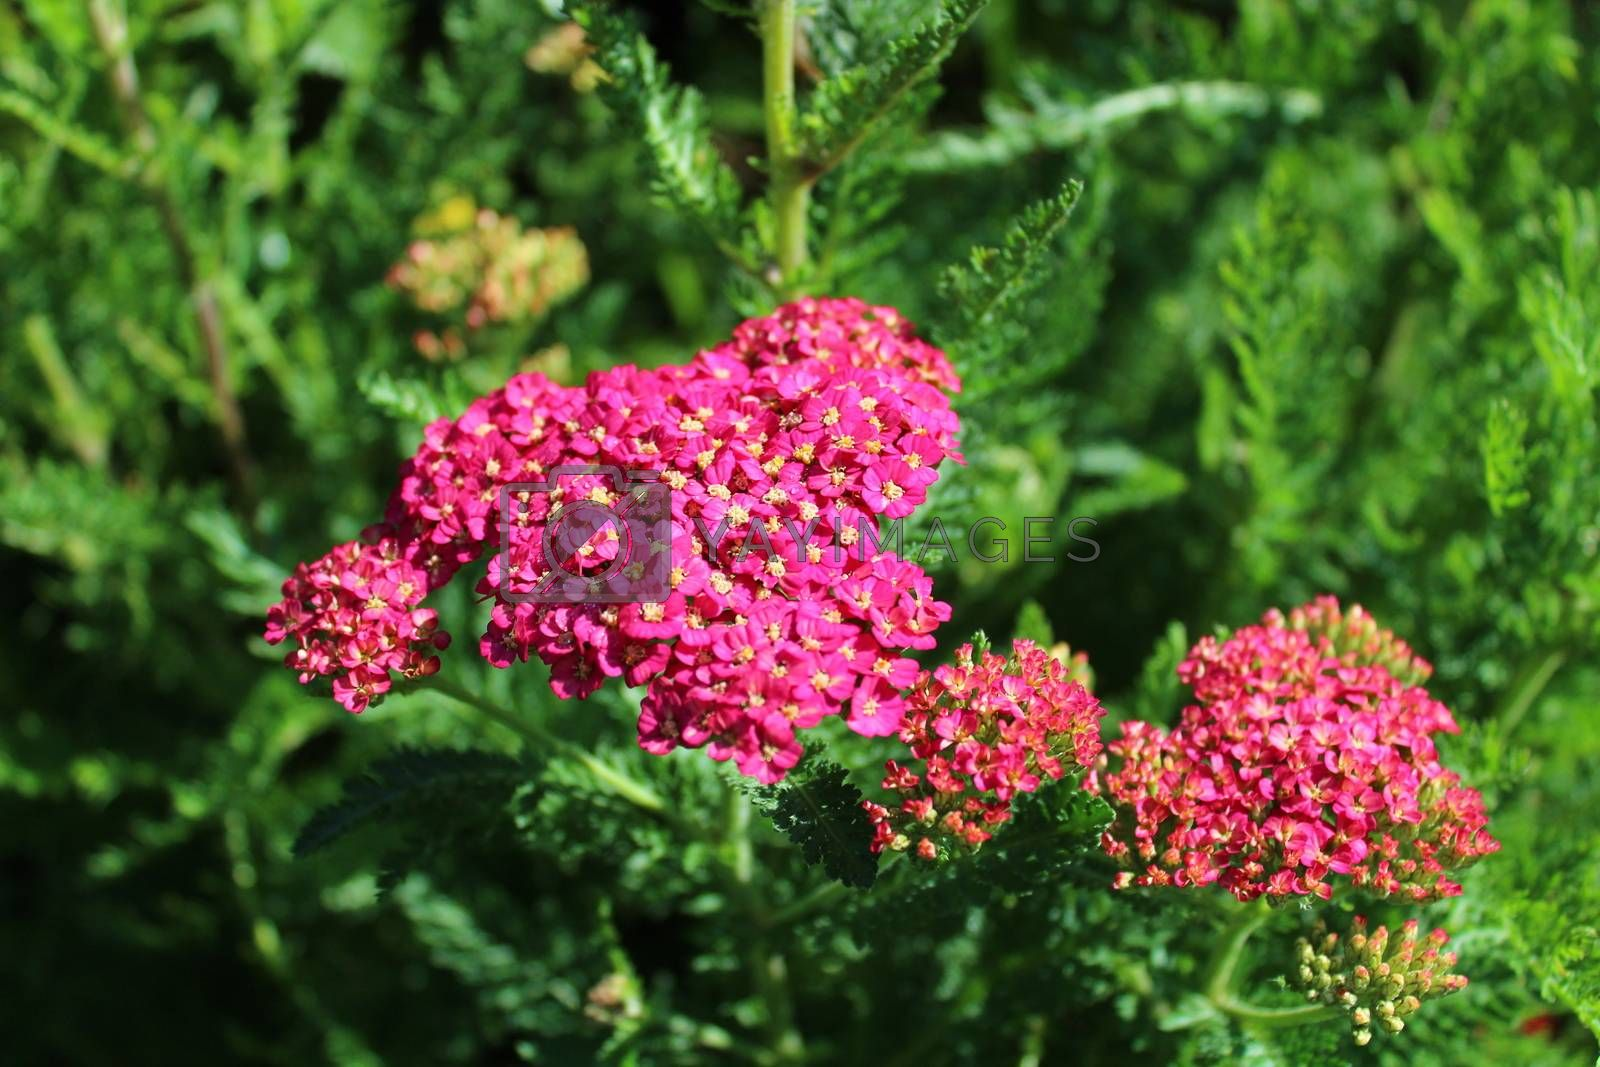 Royalty free image of pink blossoming yarrow in the garden by martina_unbehauen